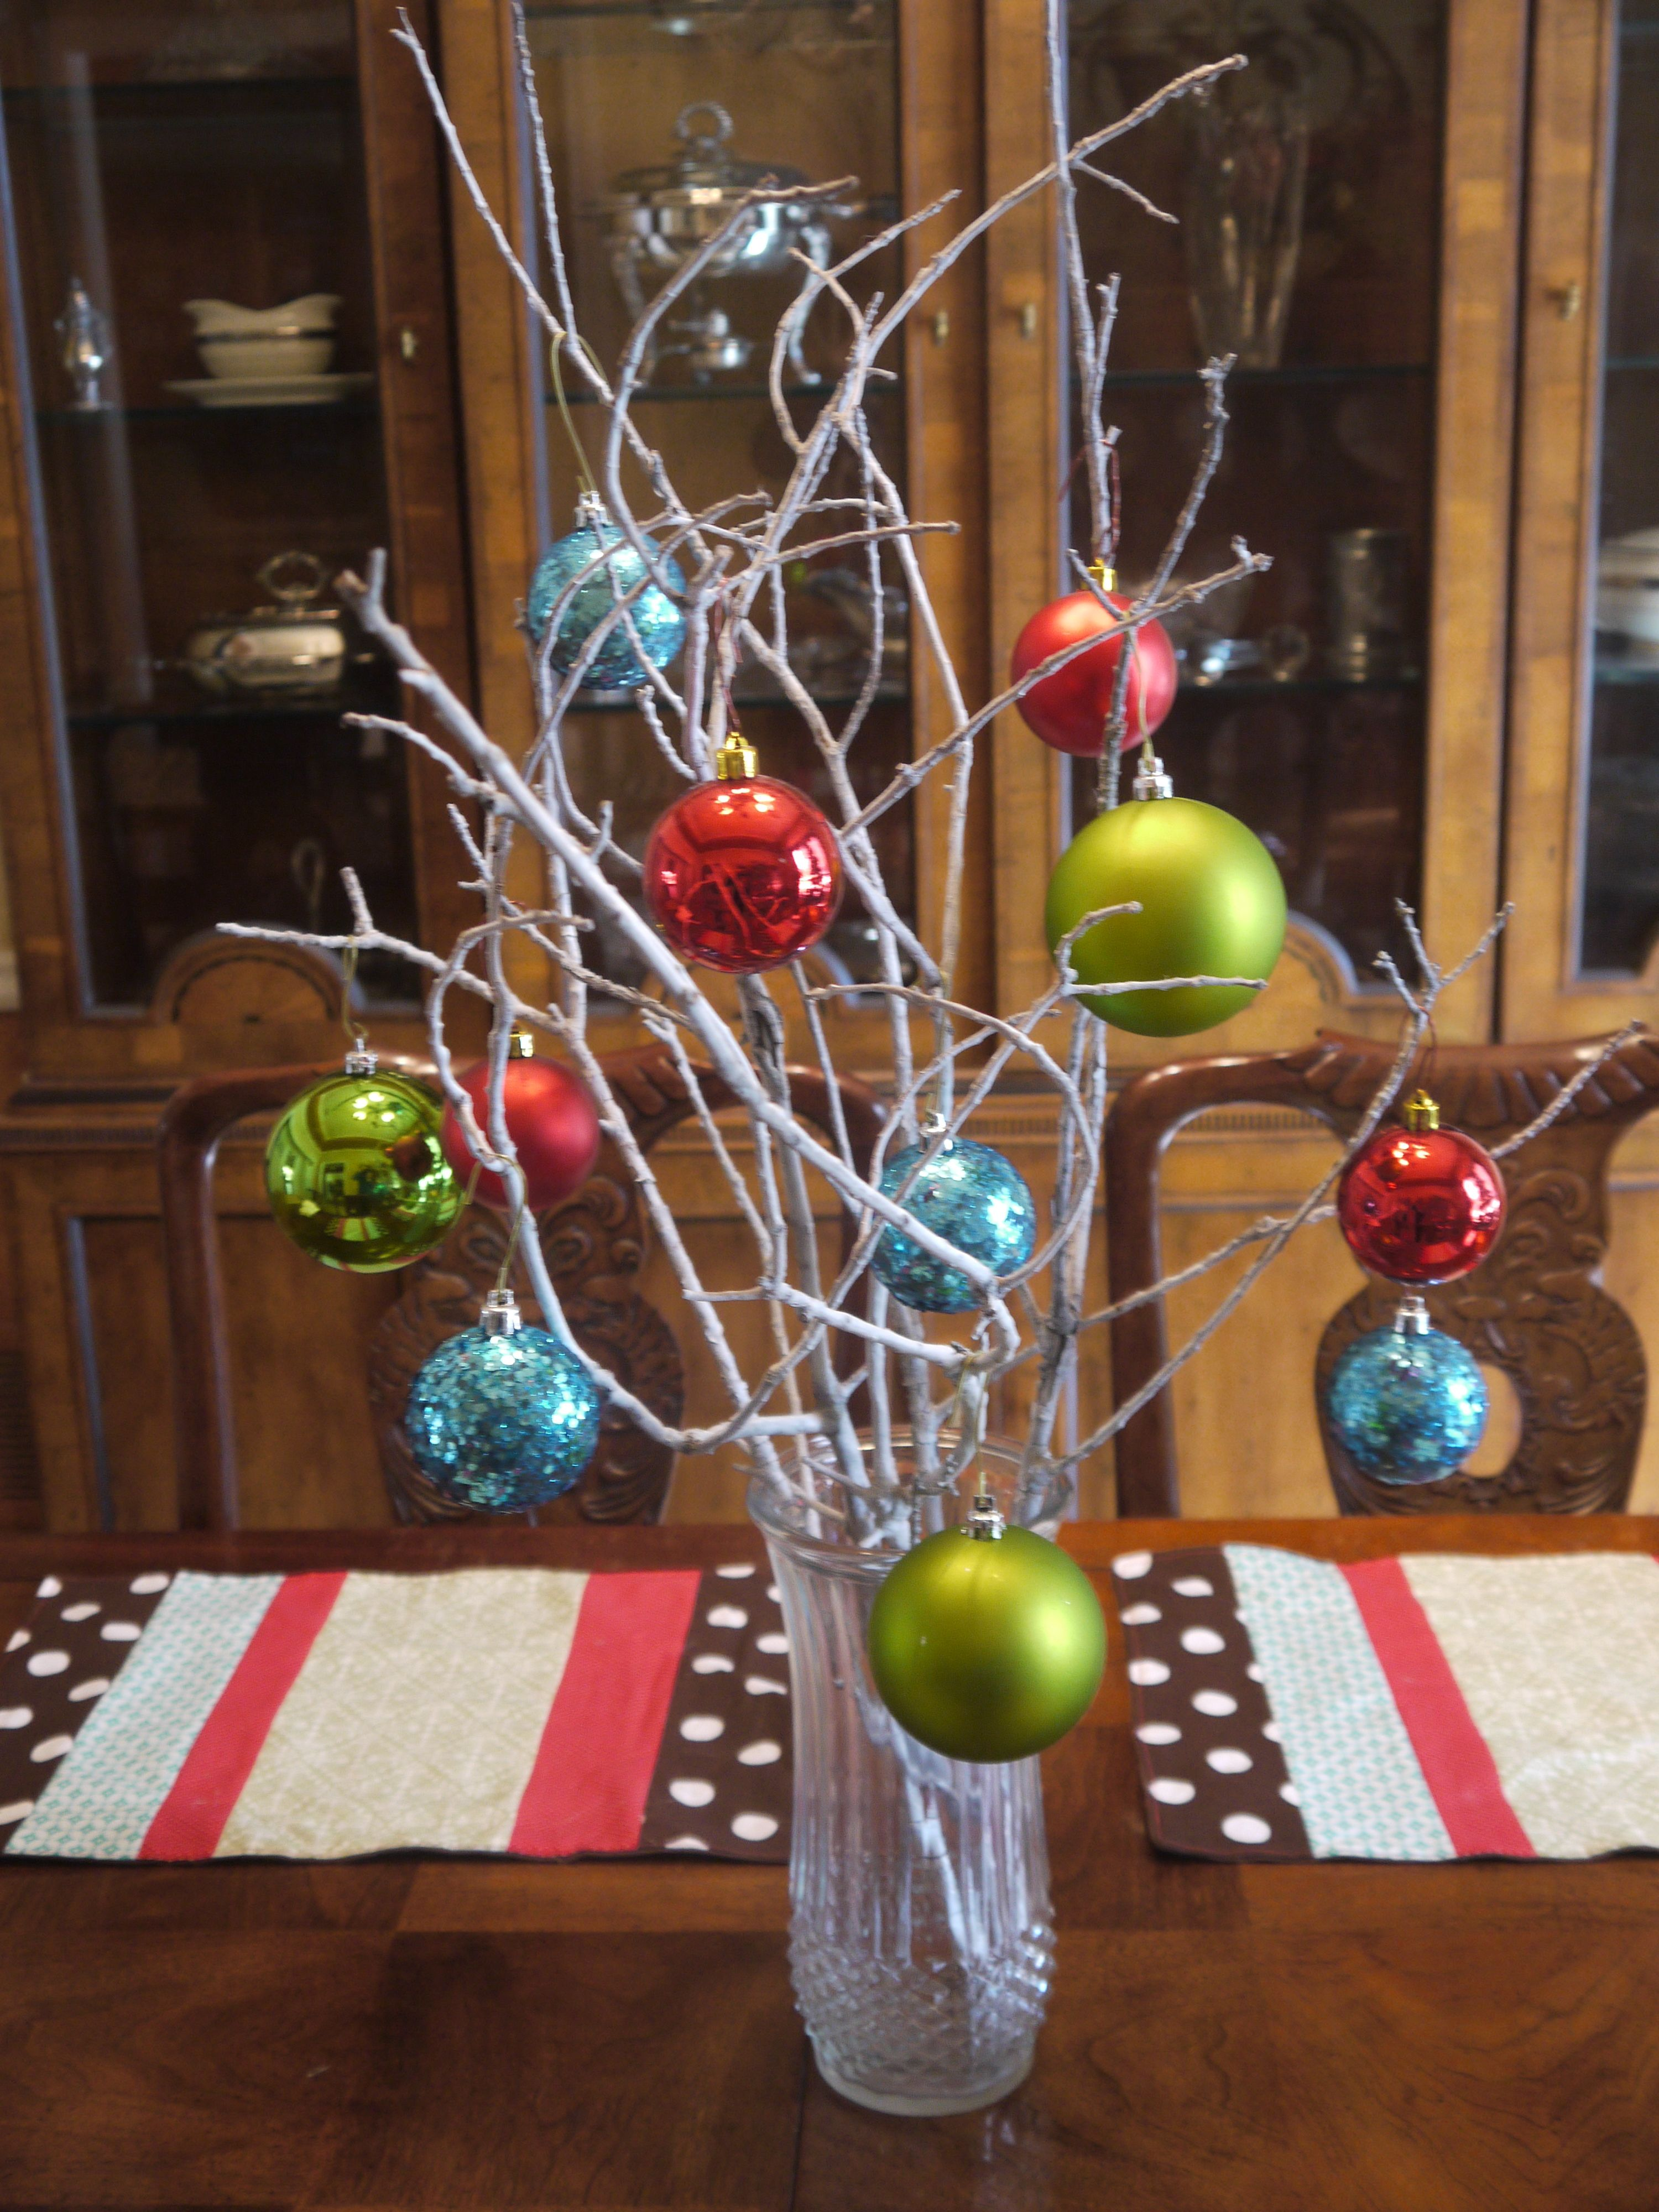 Grand Homemade with Small Balls Décor for Christmas Table ...